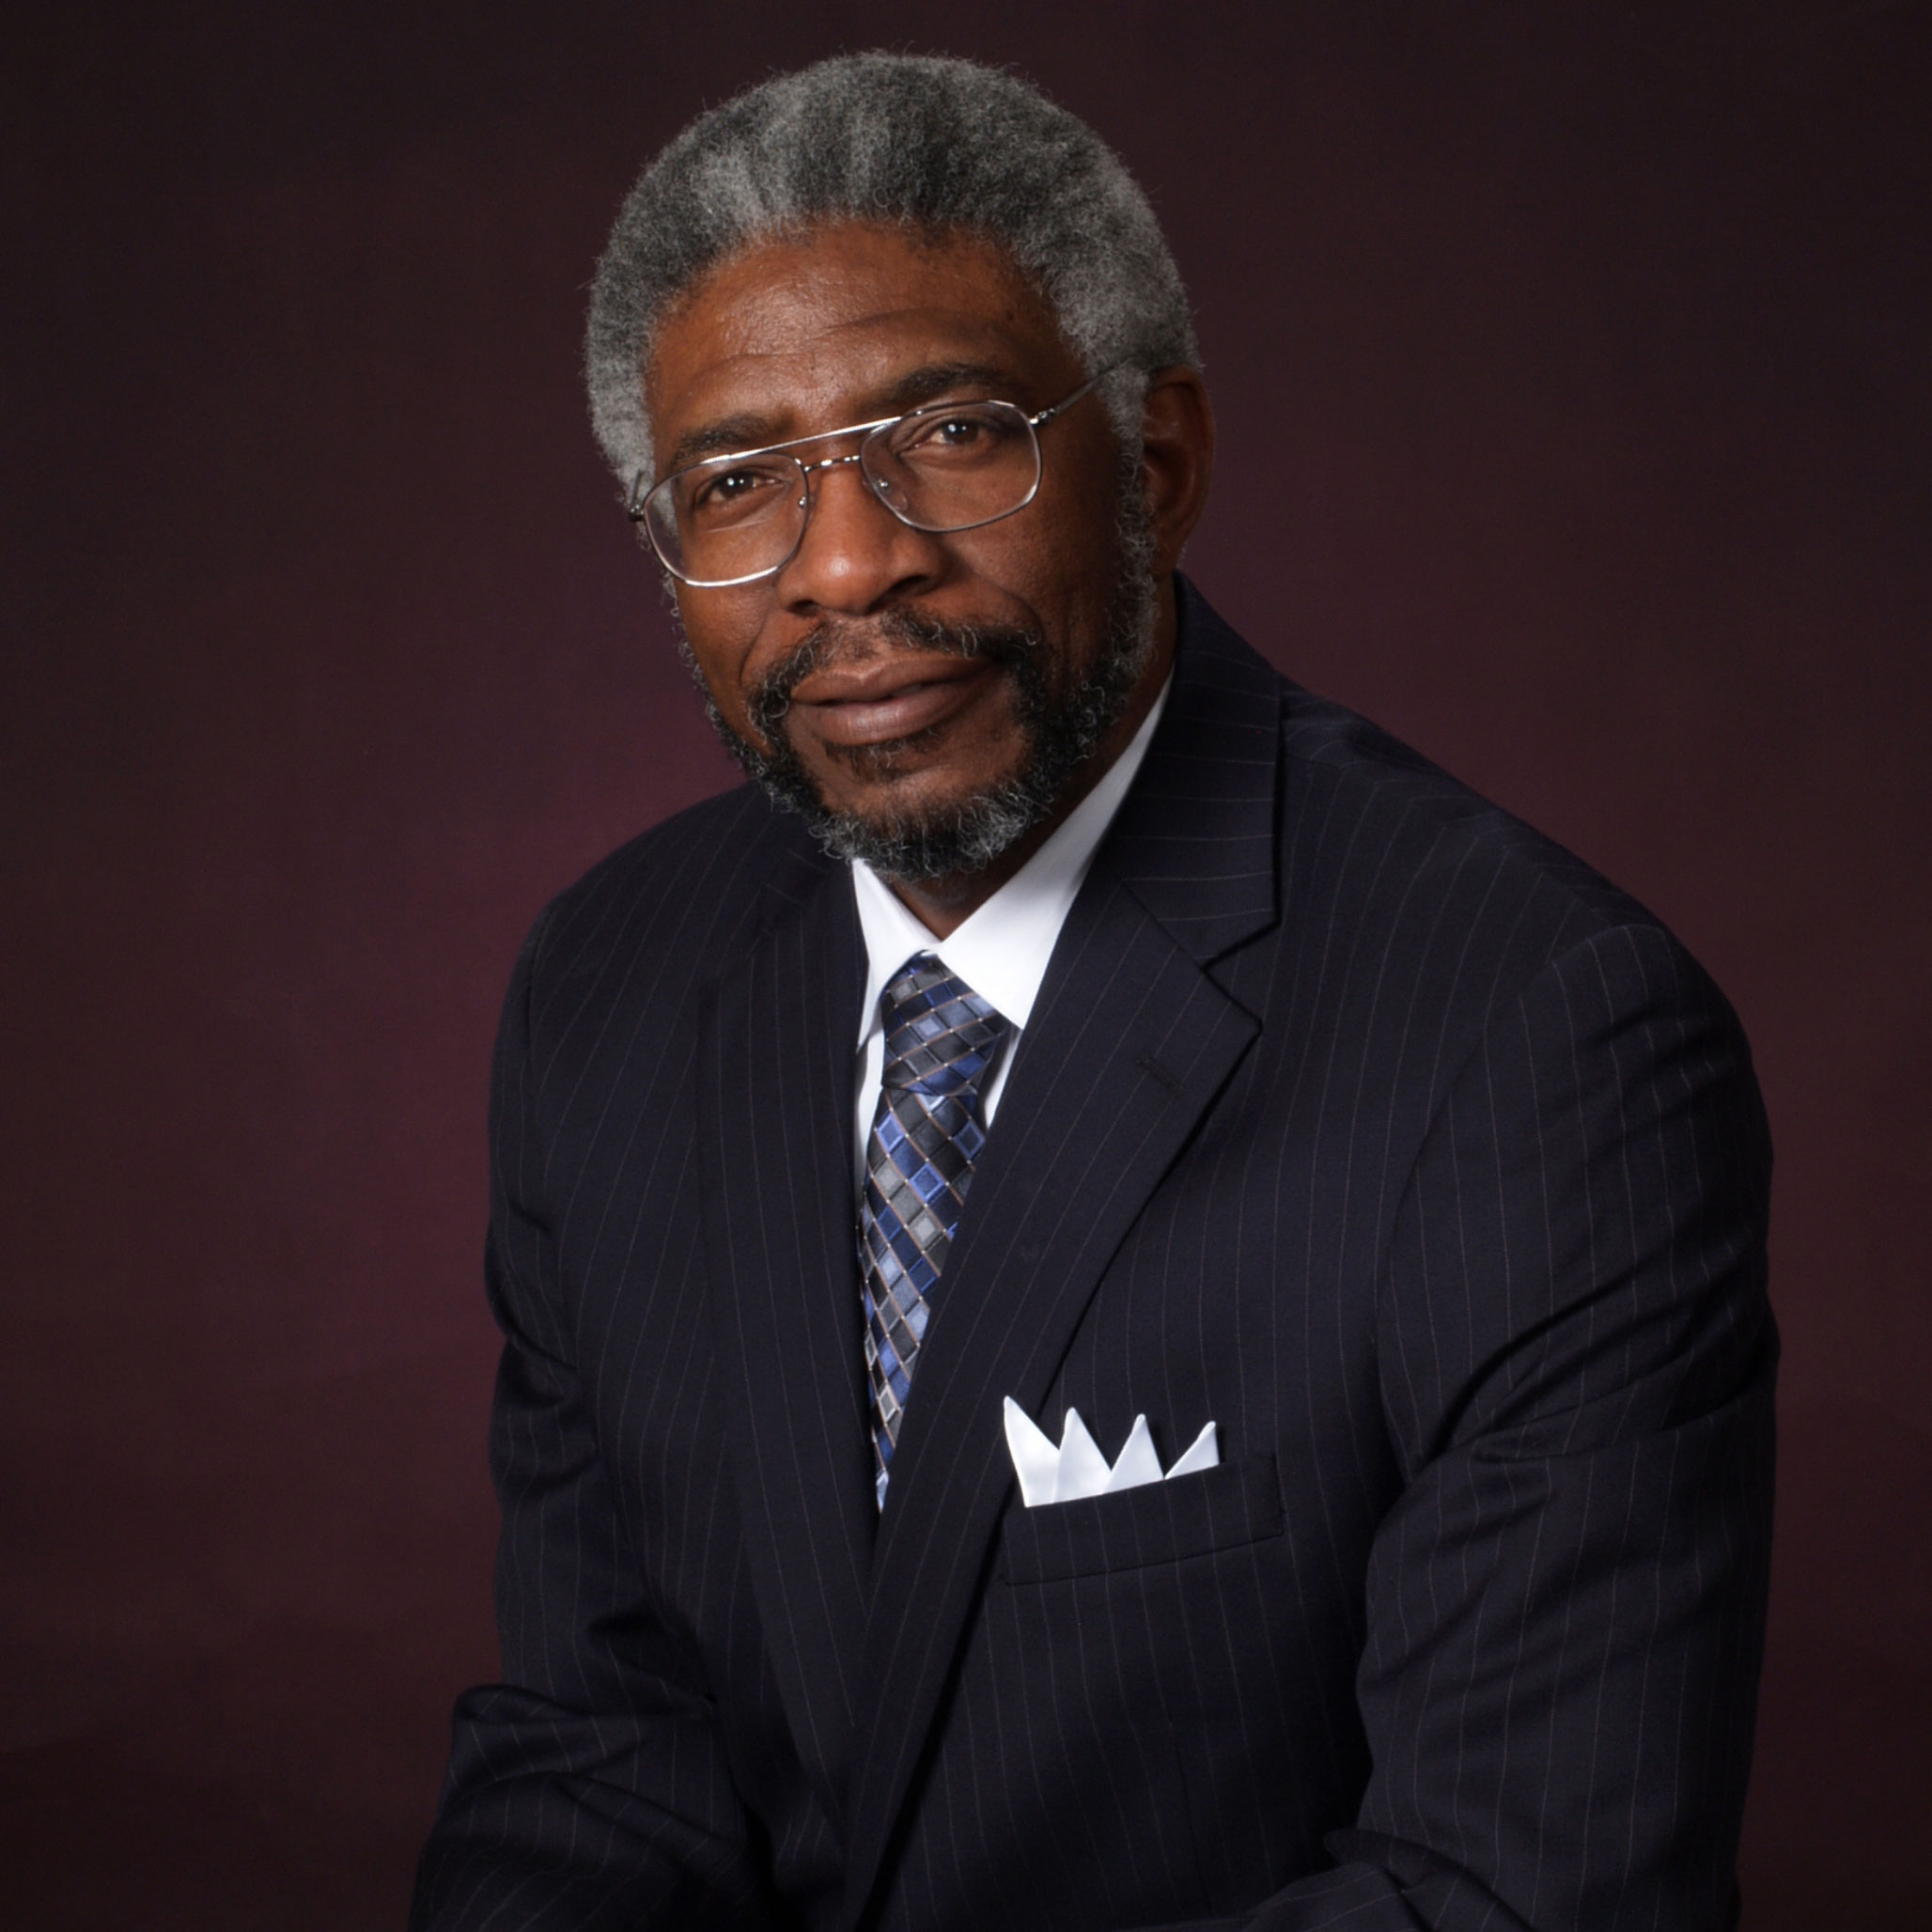 Tommy E. Smith, Pastor, Palma Ceia Baptist Church